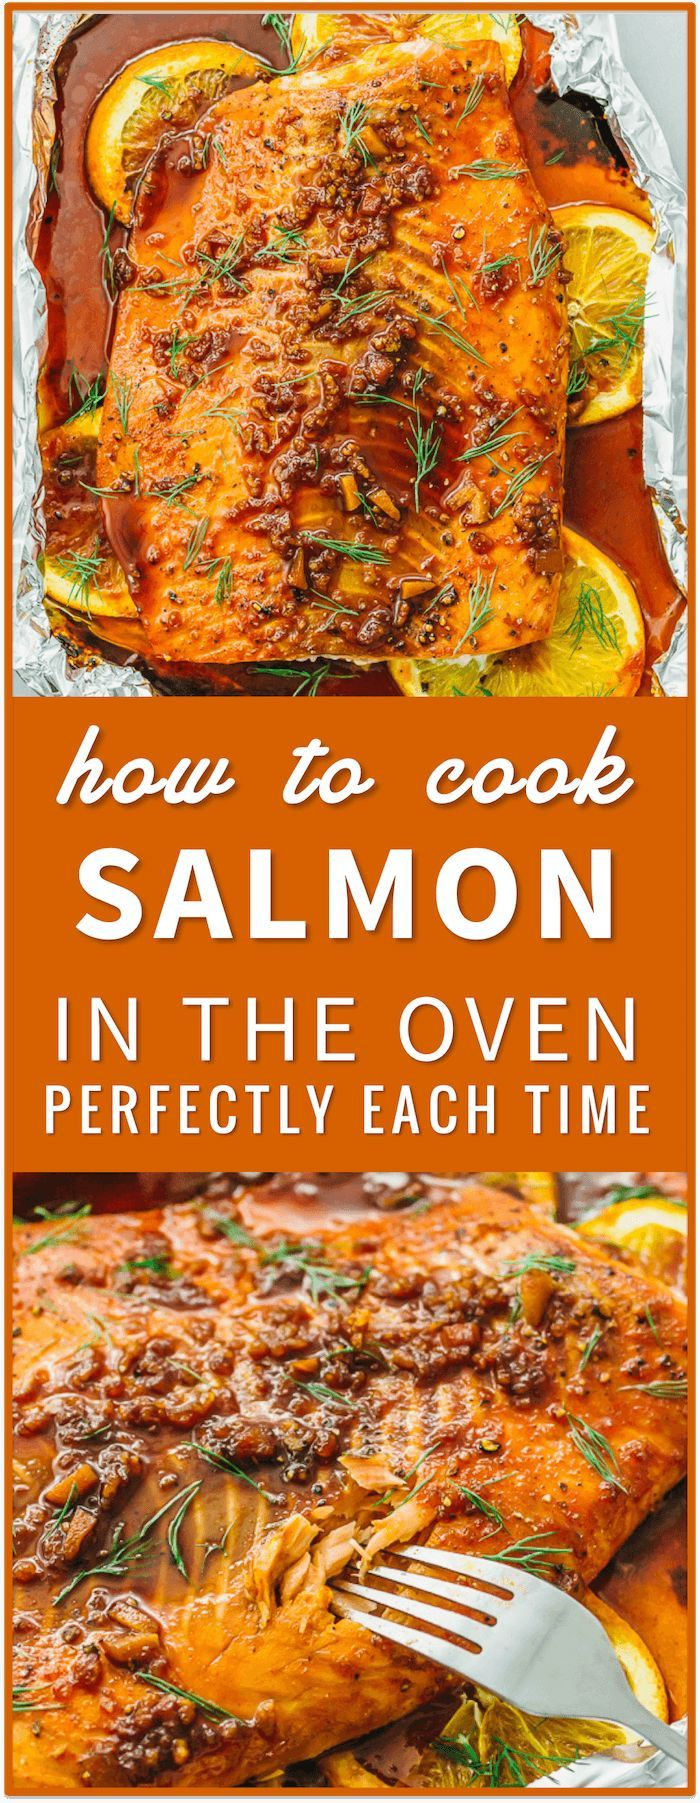 How To Cook Salmon In The Oven Perfectly Each Time